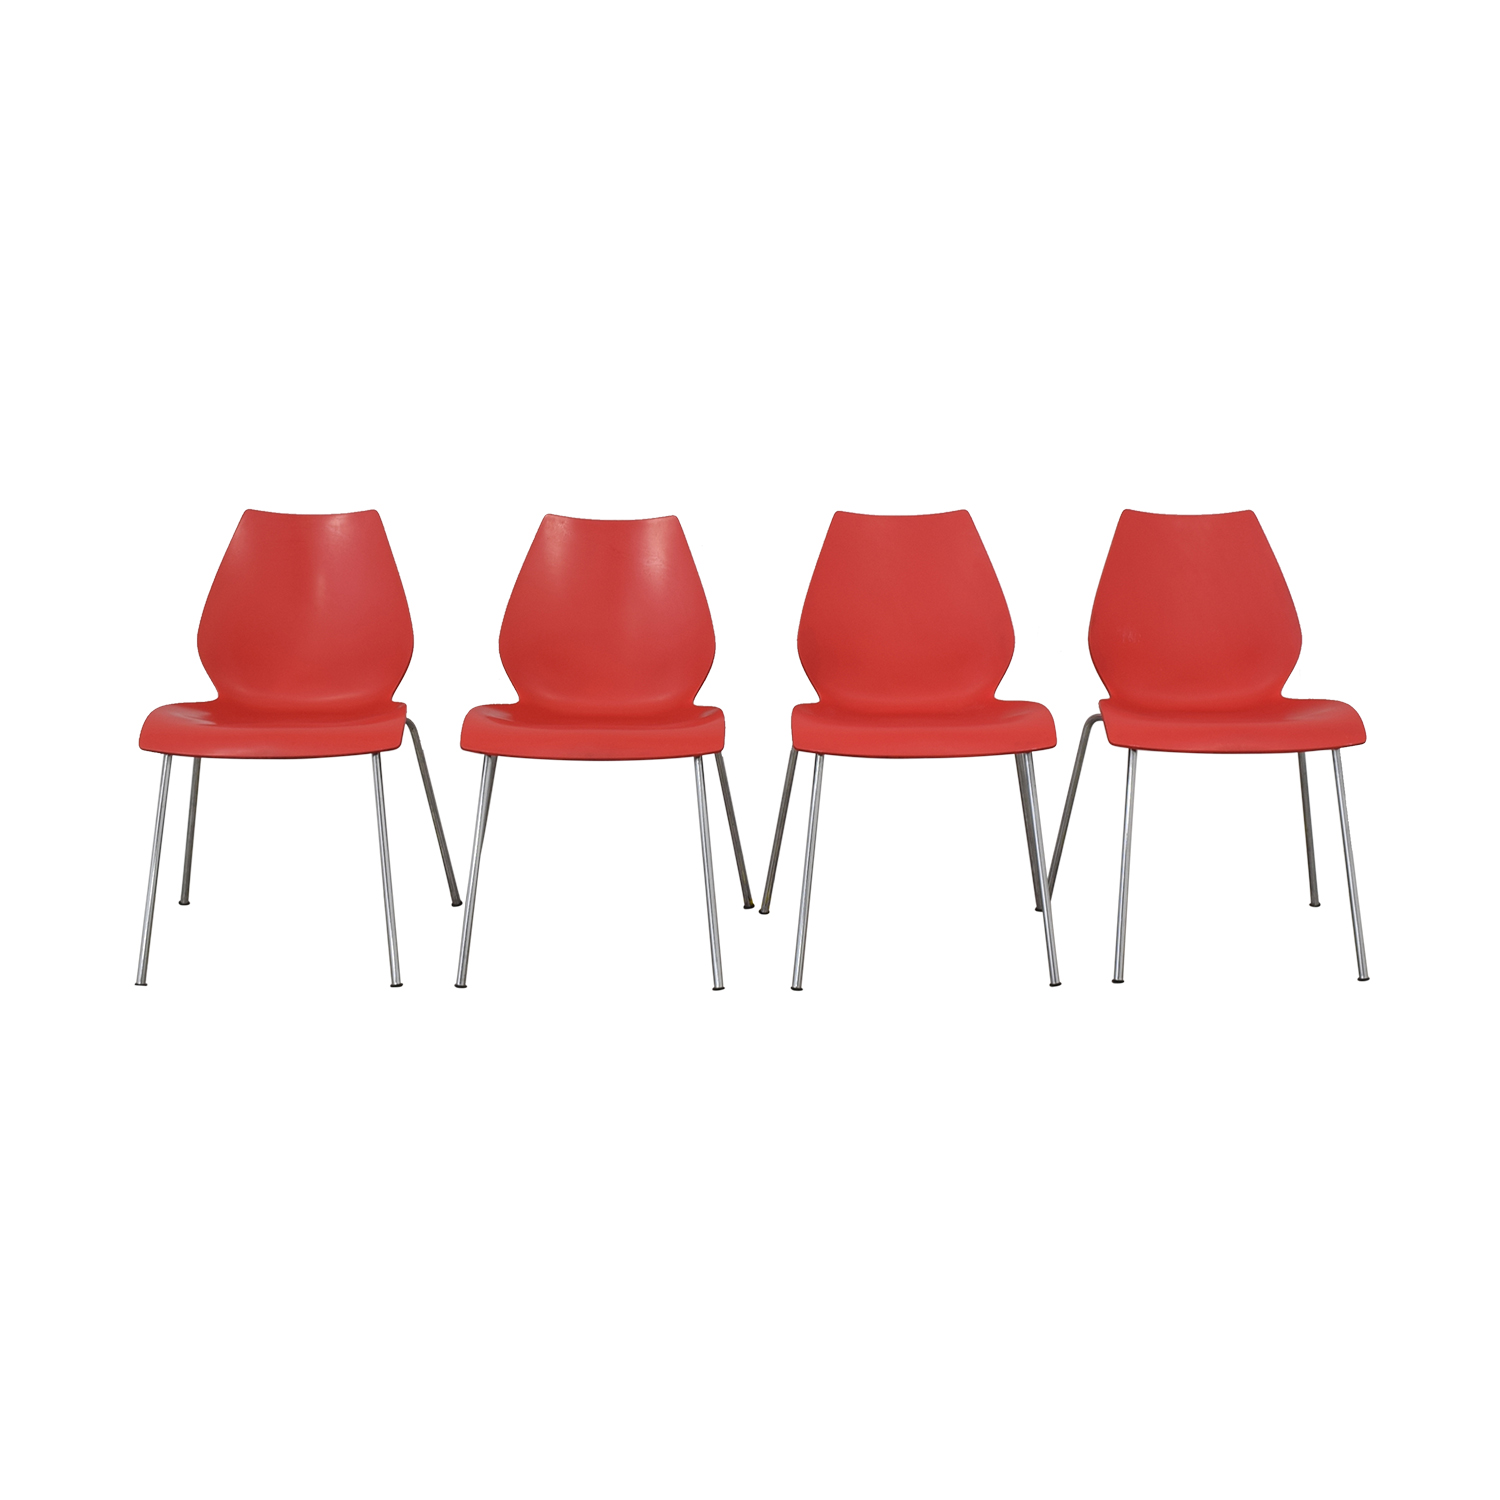 Kartell Maui by Vico Magistretti Side Chairs / Chairs